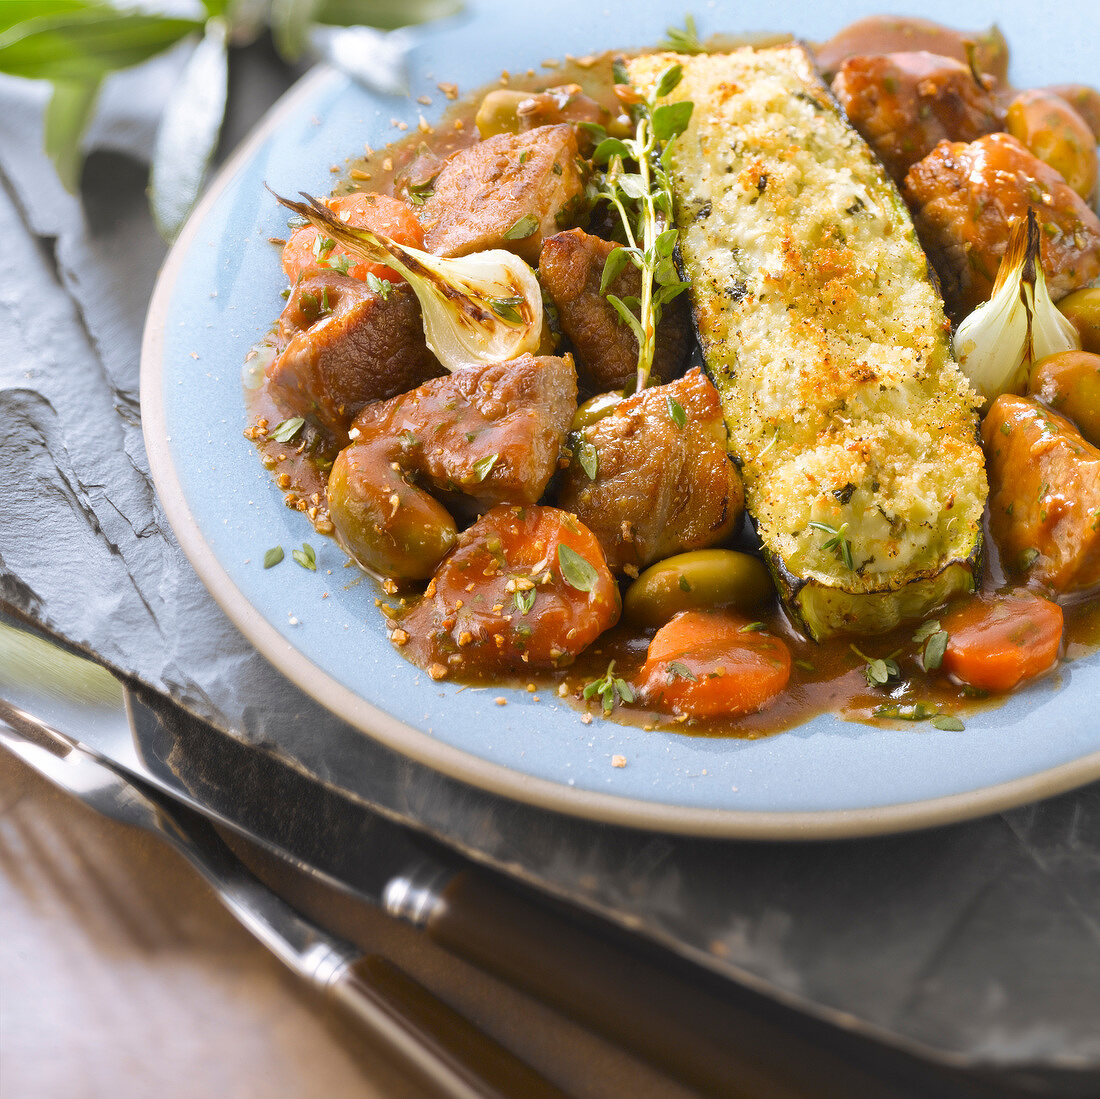 Lamb and olive stew and zucchinis stuffed with Brocciu